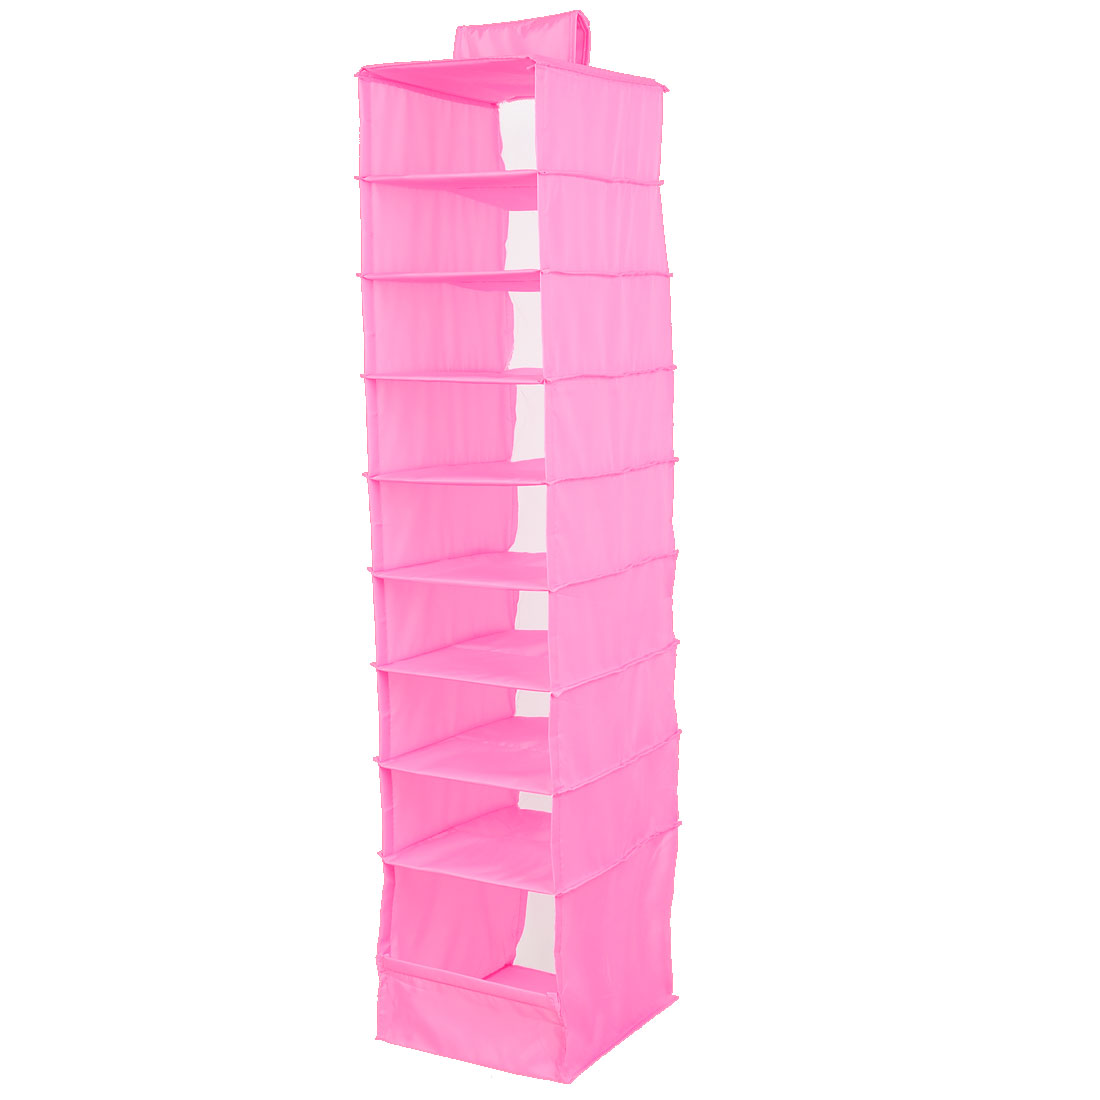 Foldable 9 Compartments Clothes Underwear Organizer Storage Box Pink